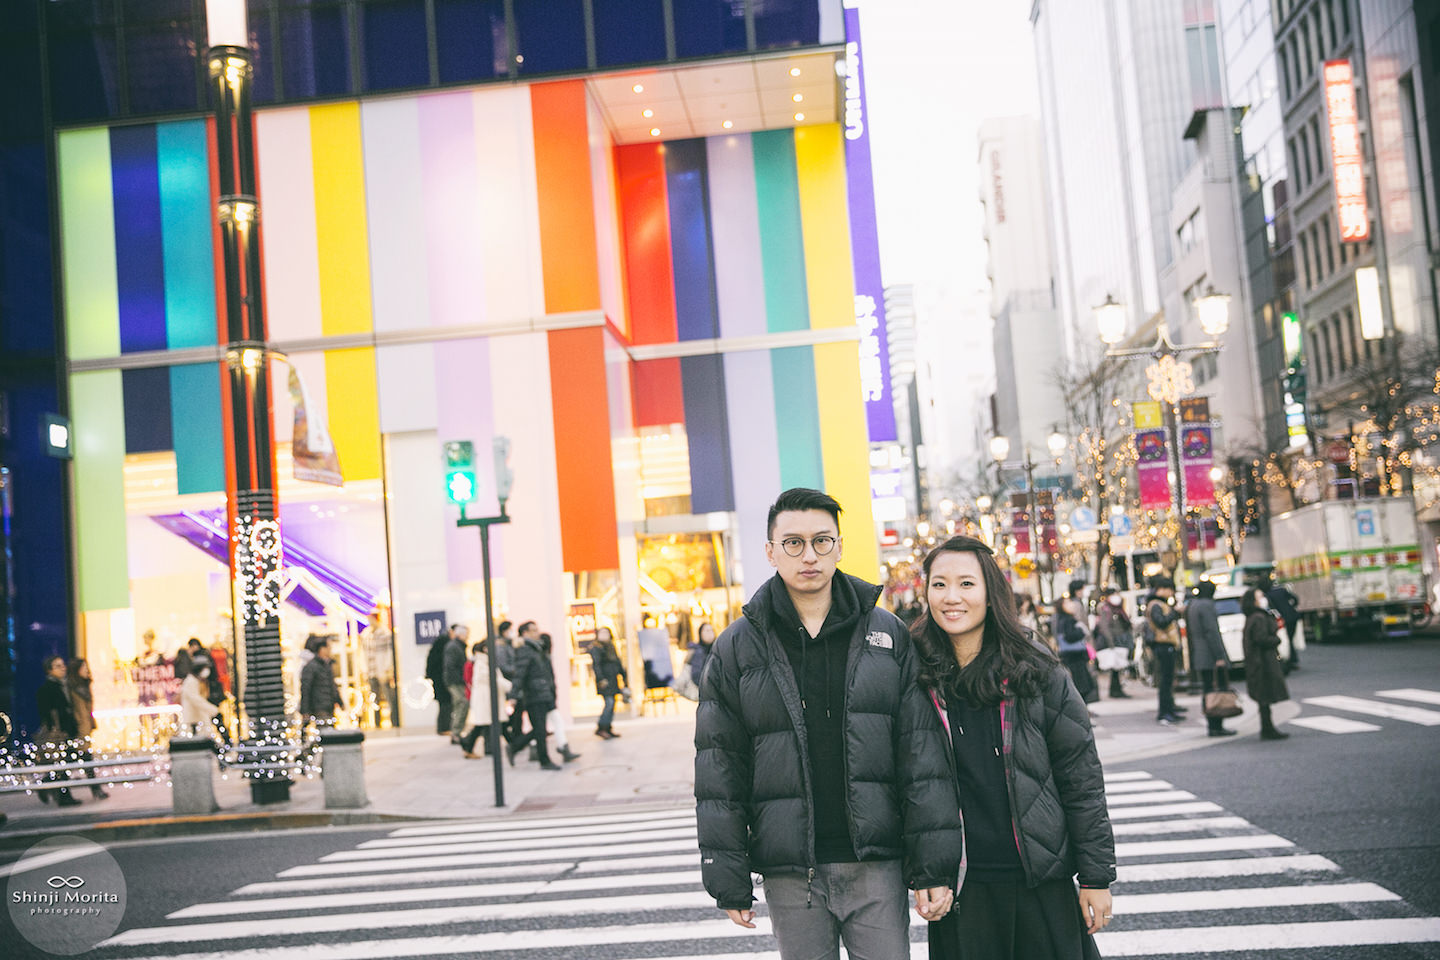 A couple holding hands and walking around Ginza shopping area in Ginza, Tokyo